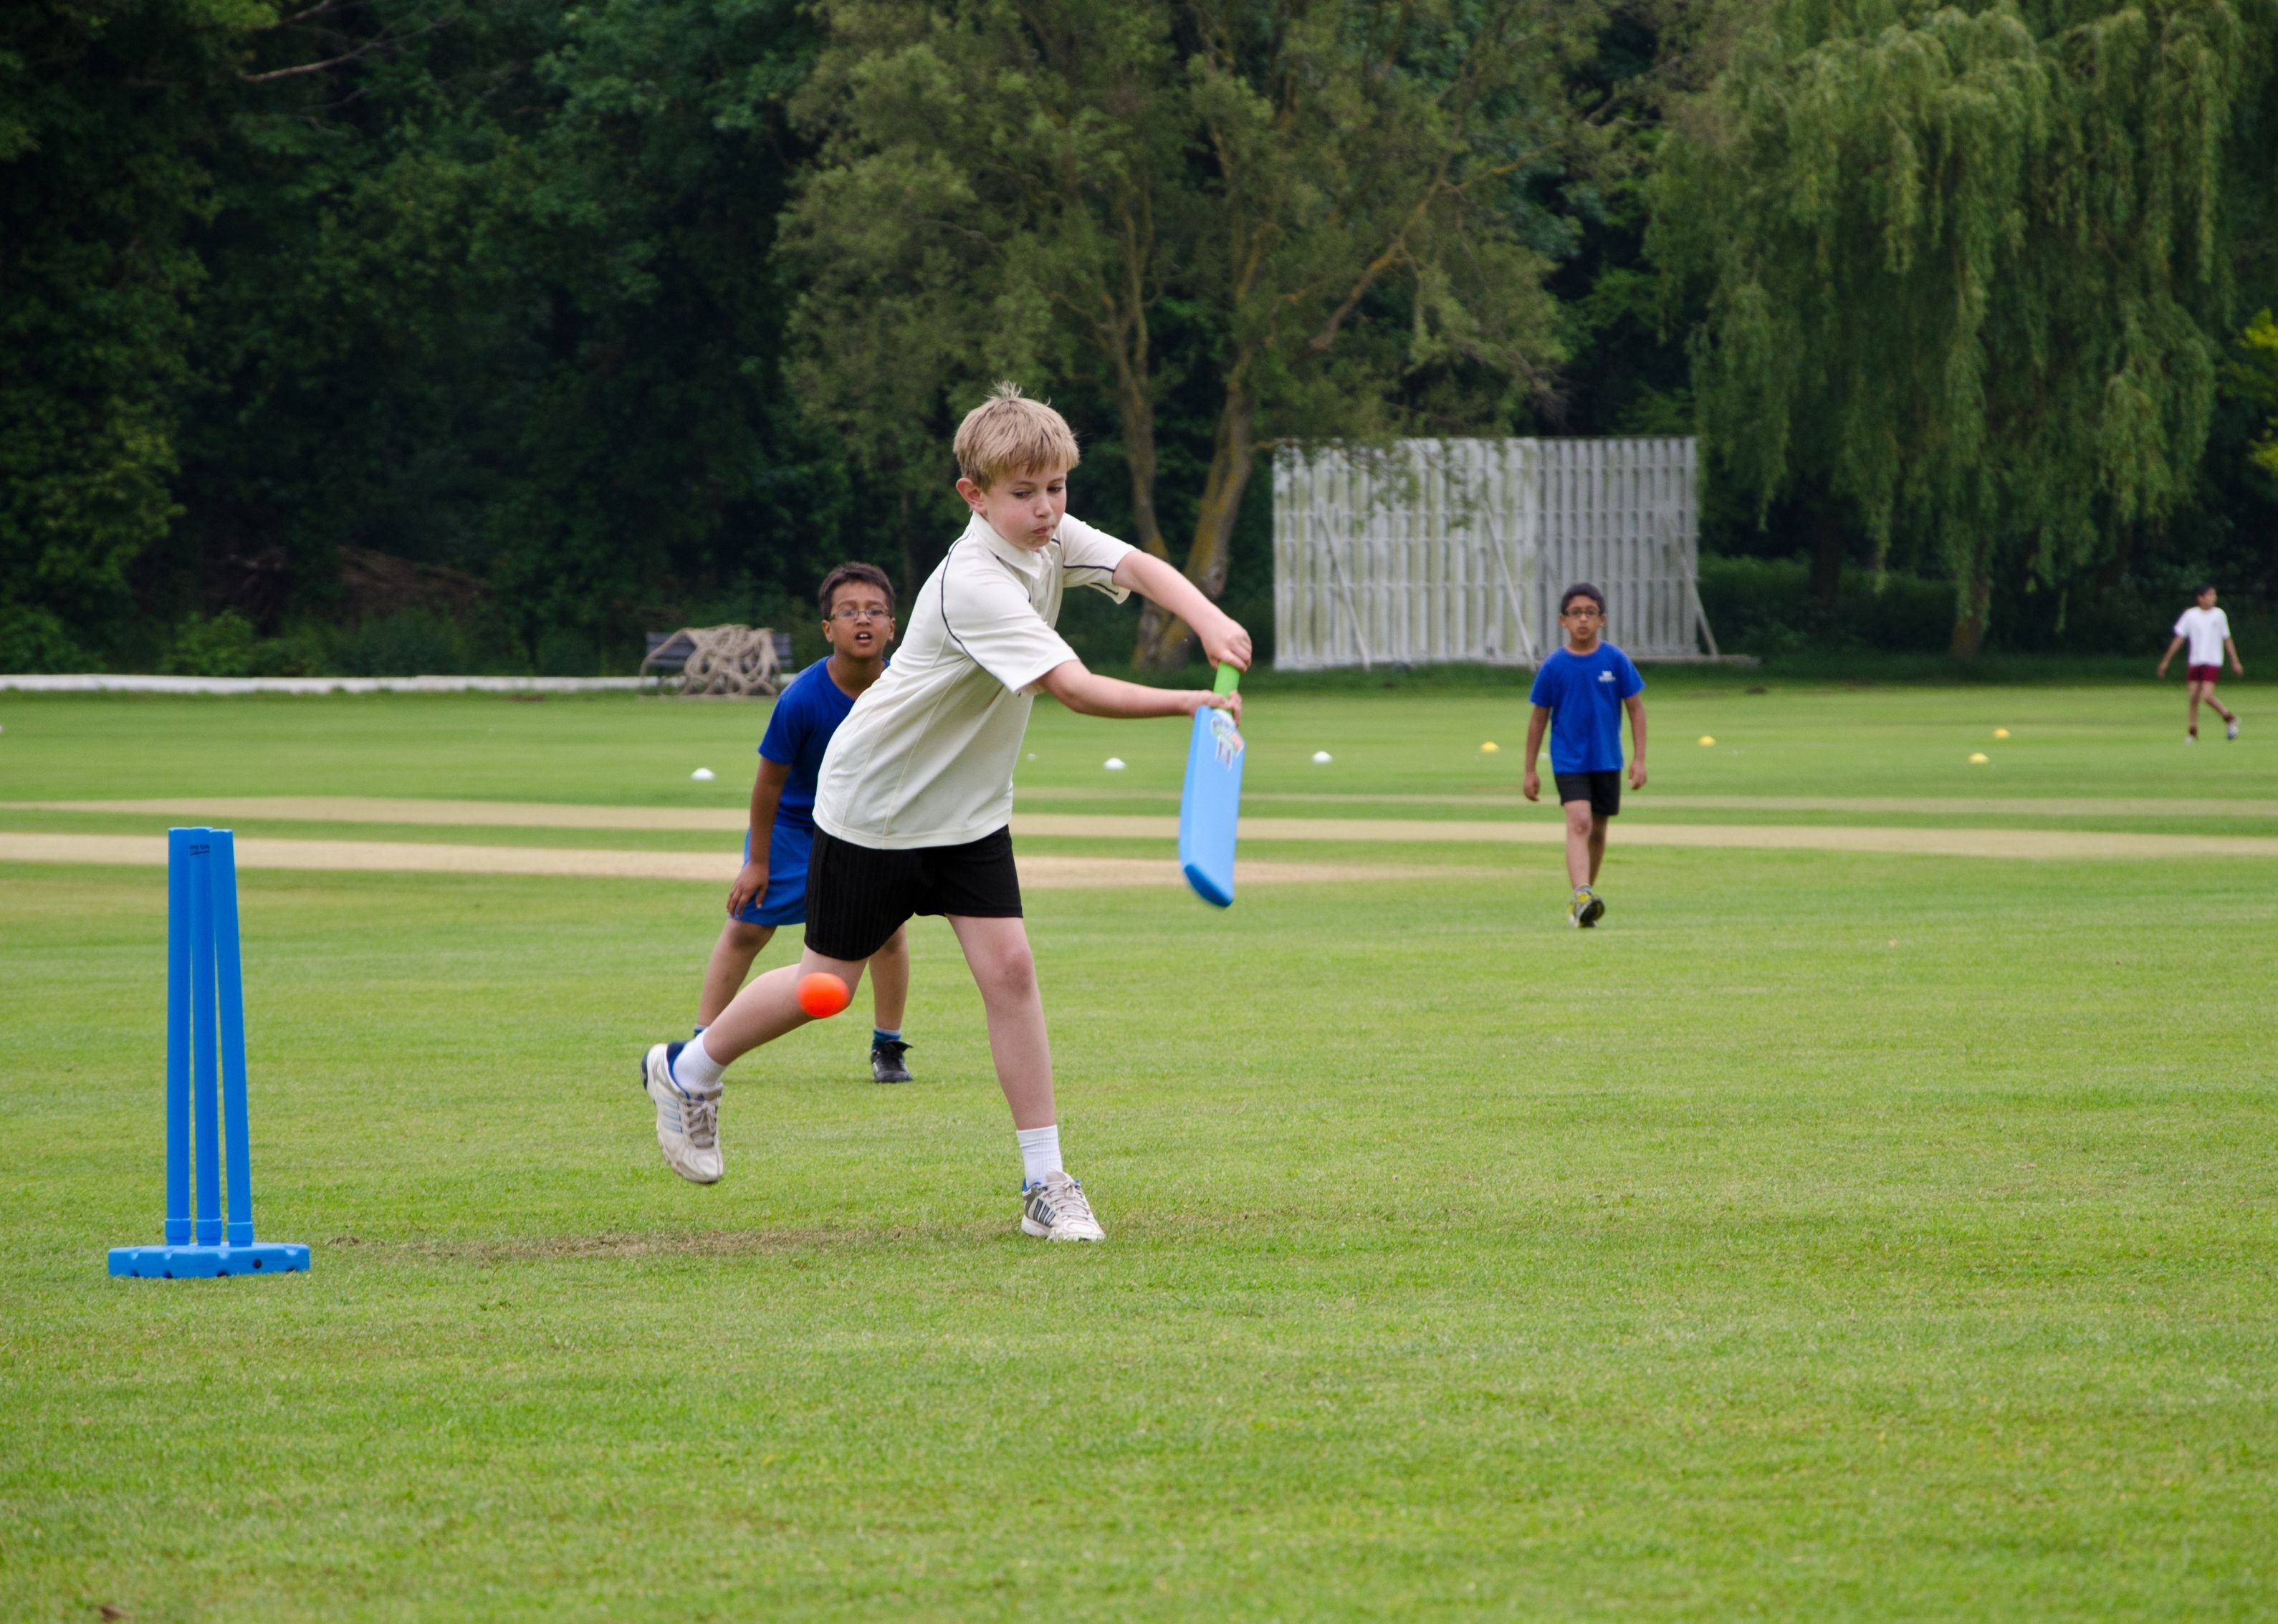 Asda Kwik Cricket